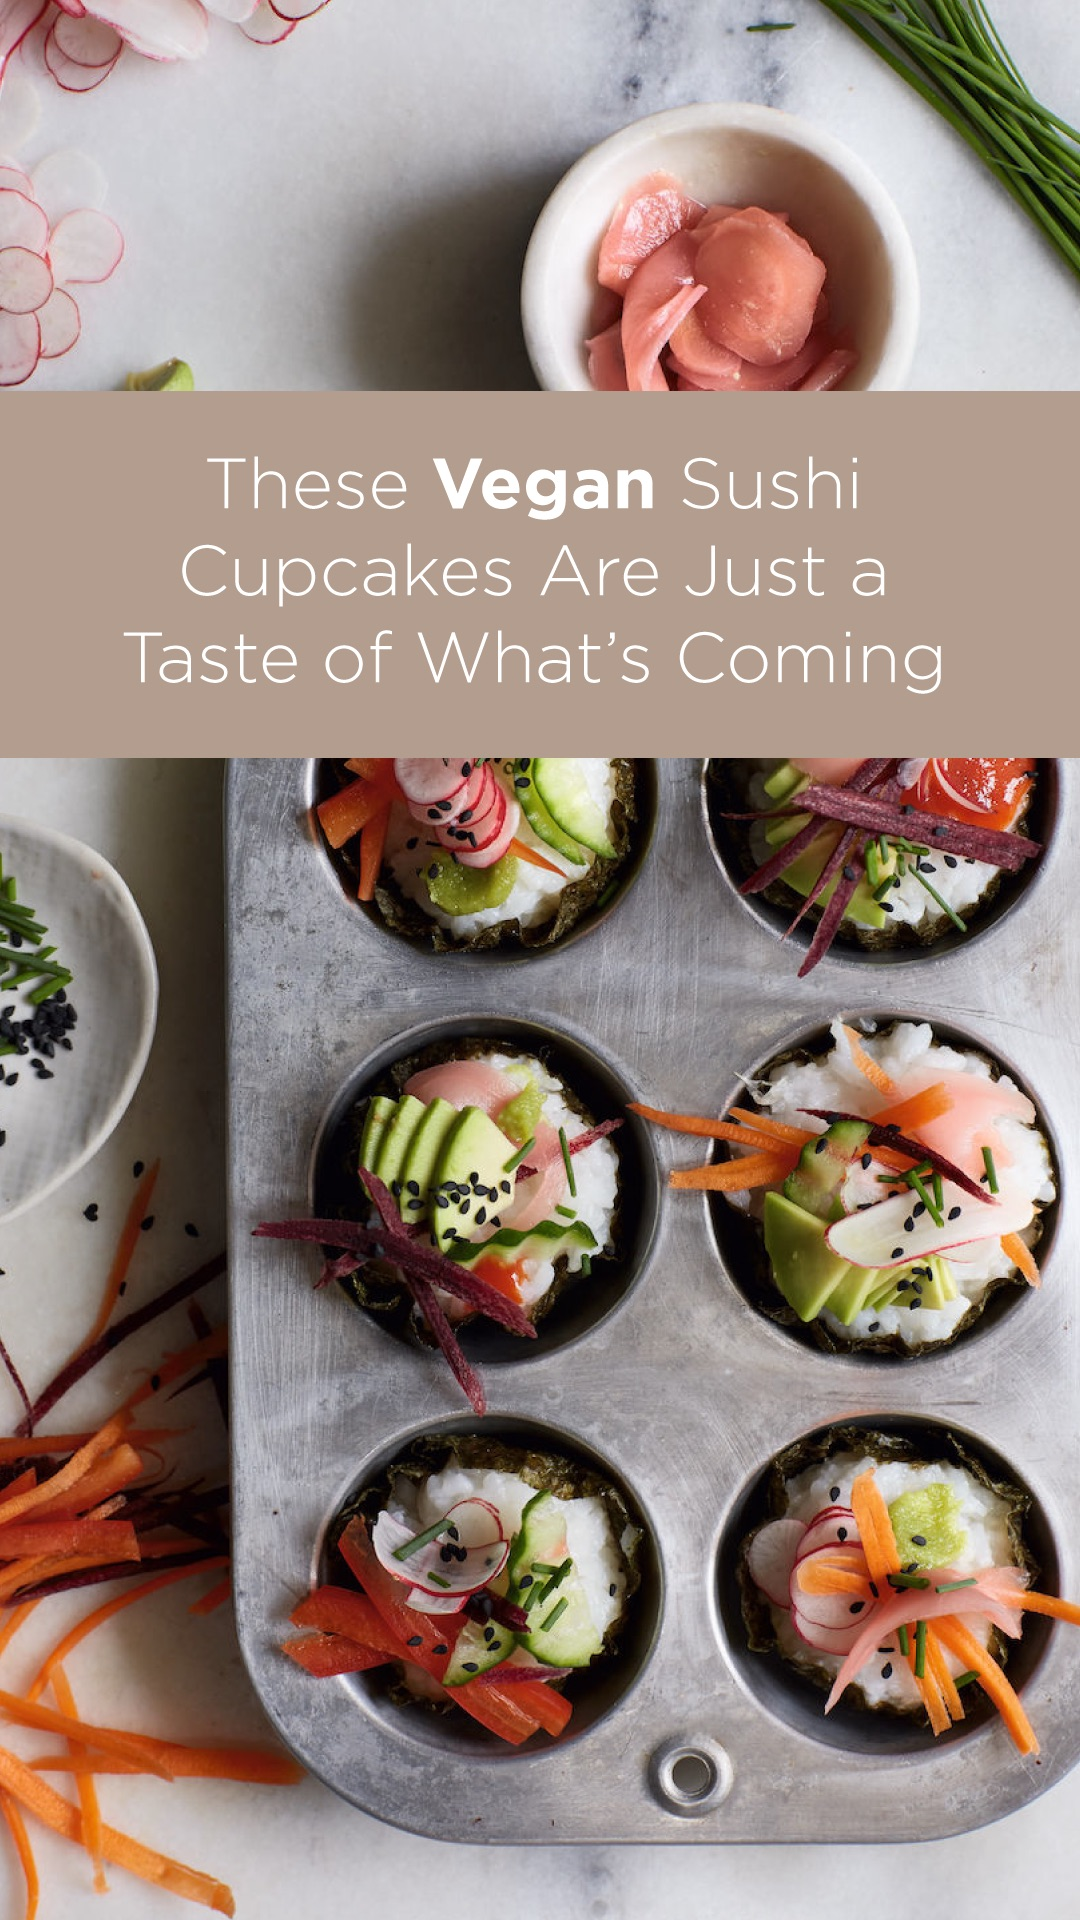 These Vegan Sushi Cupcakes Are Just a Taste of What's Coming